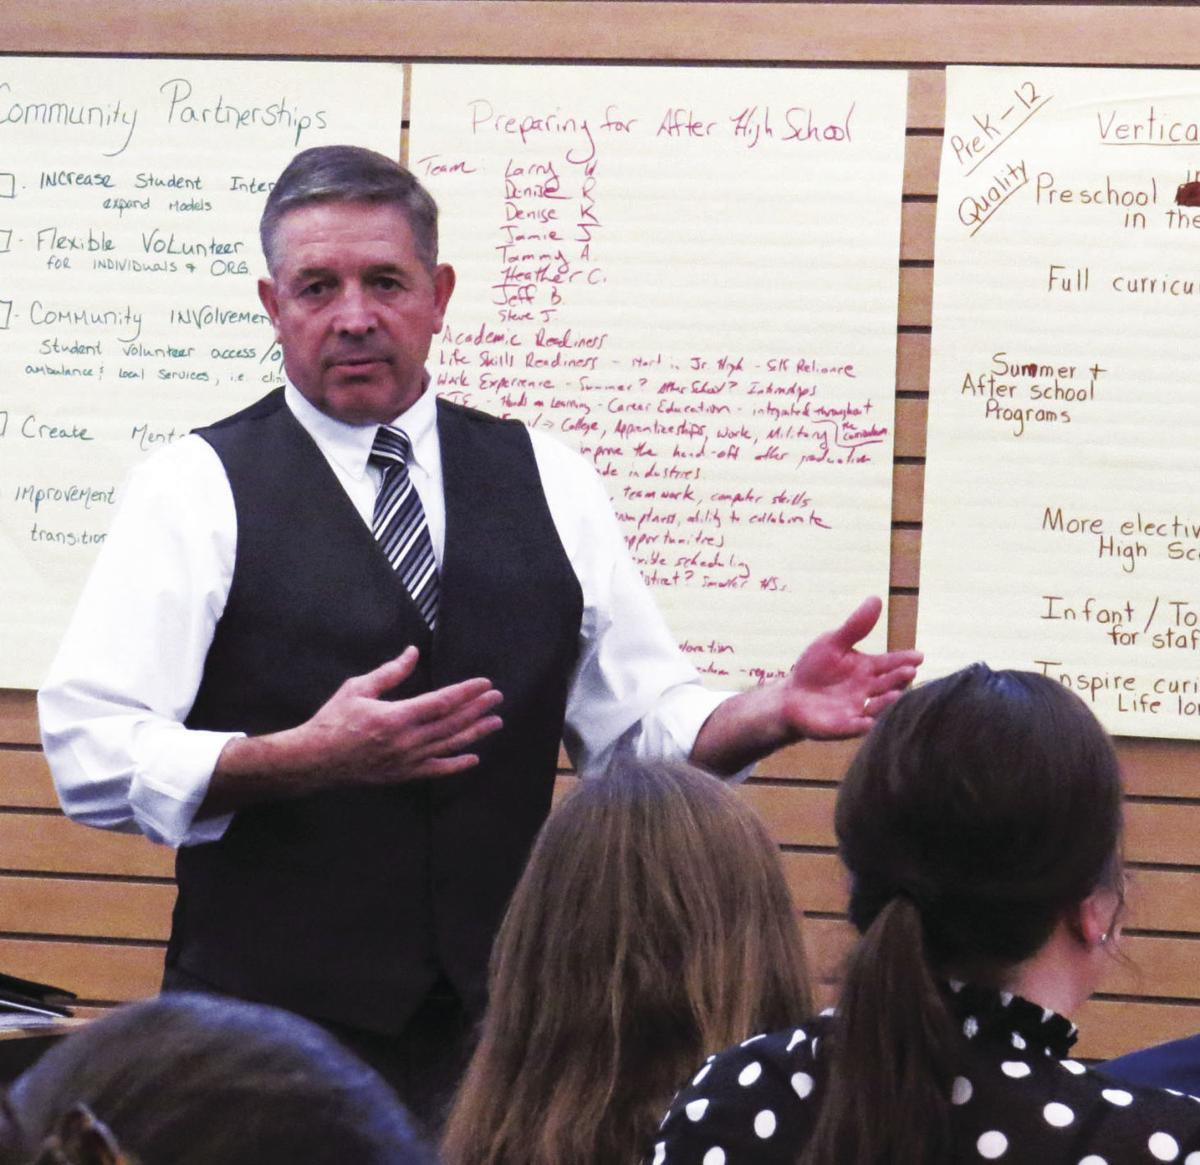 A shared vision: KCSD brainstorms strategic plan with community